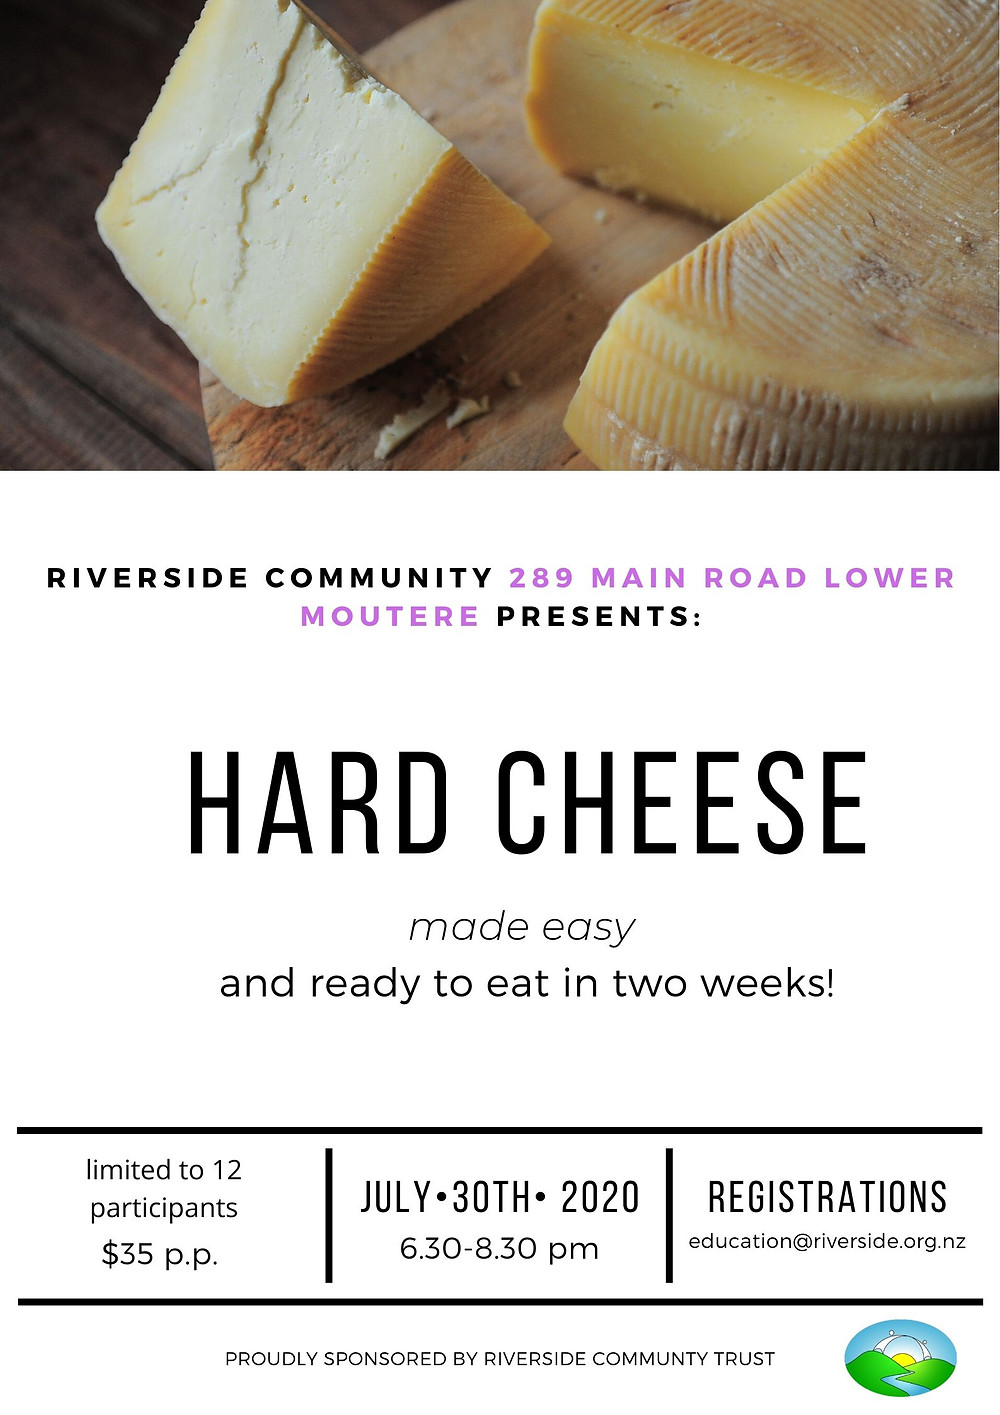 Hard Cheese Riverside